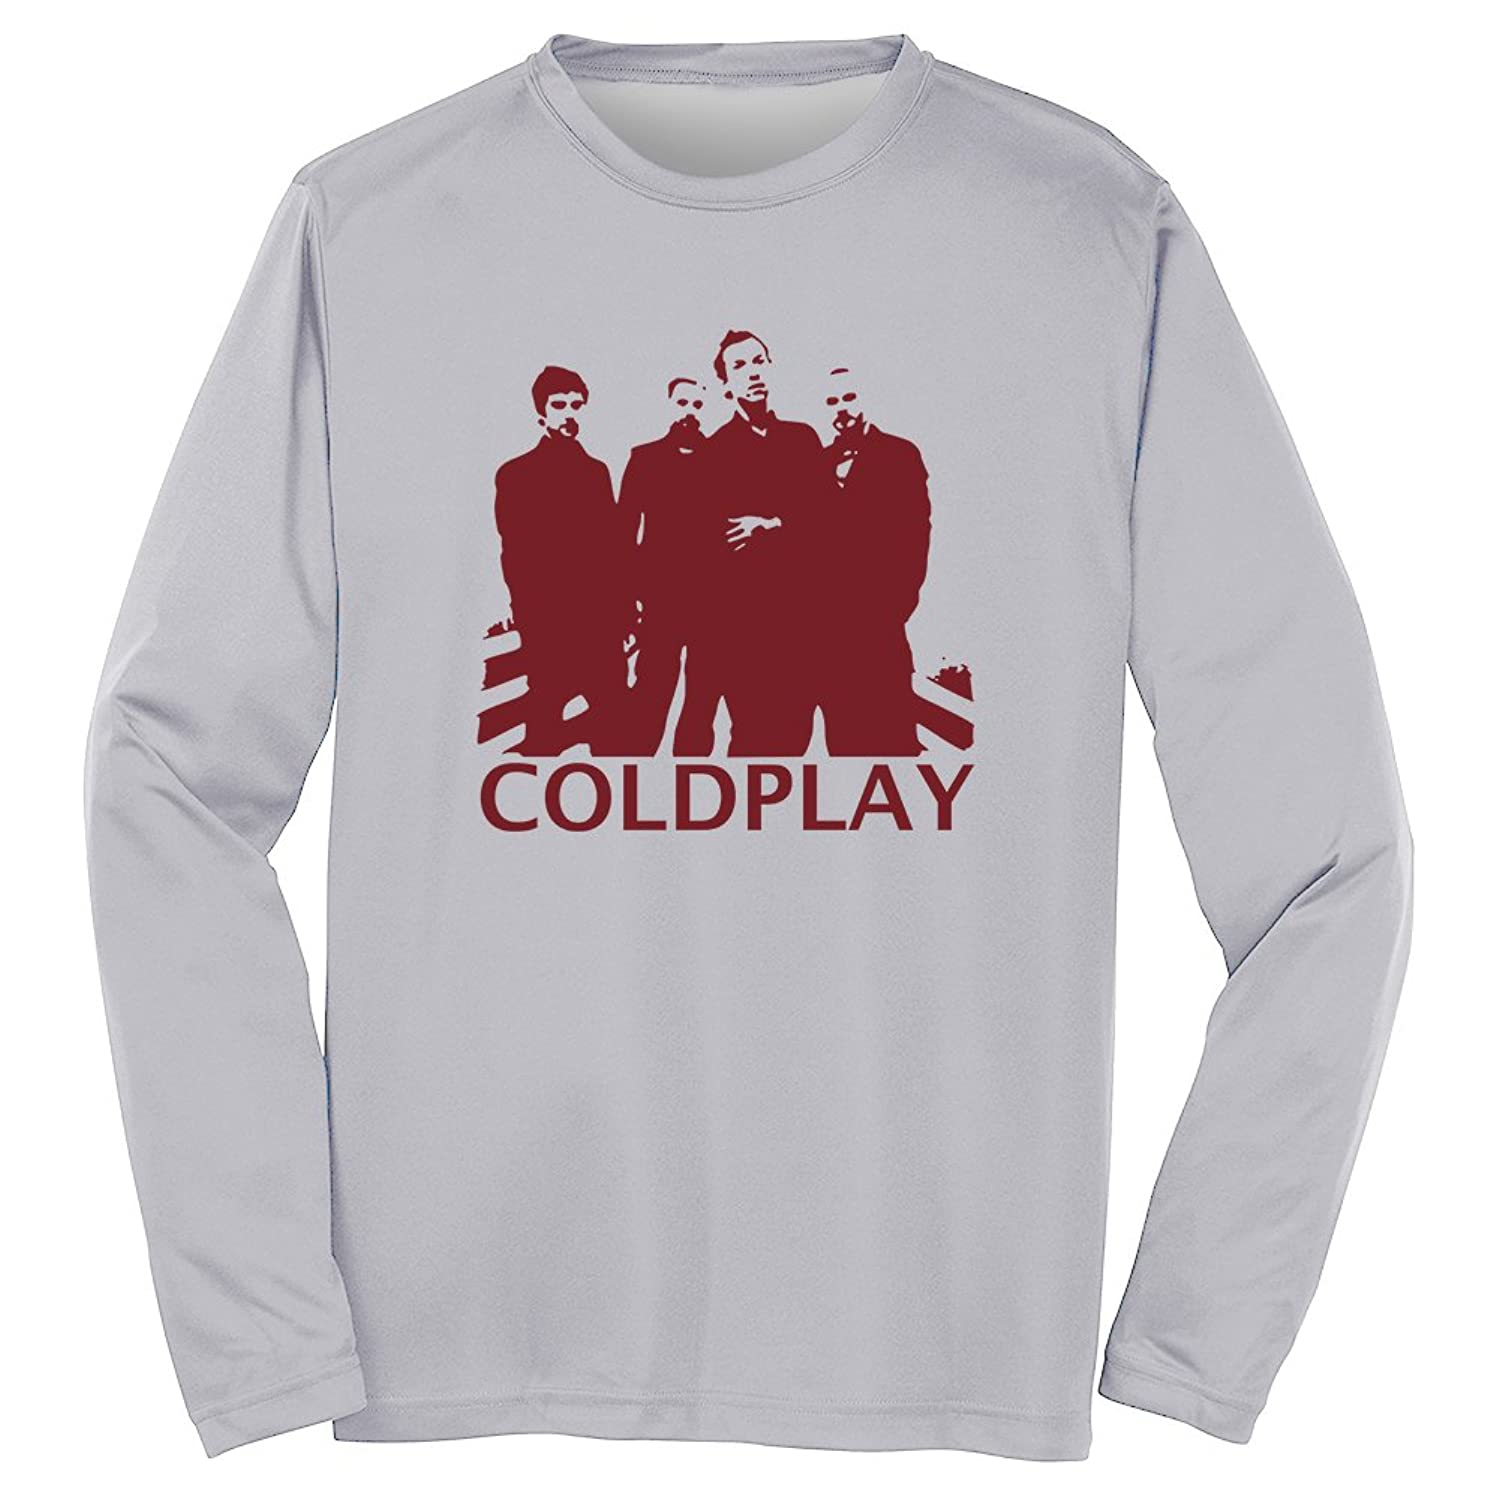 Men's Crew Neck Coldplay Pattern Printed T-shirt Casual Long Sleeve Tees